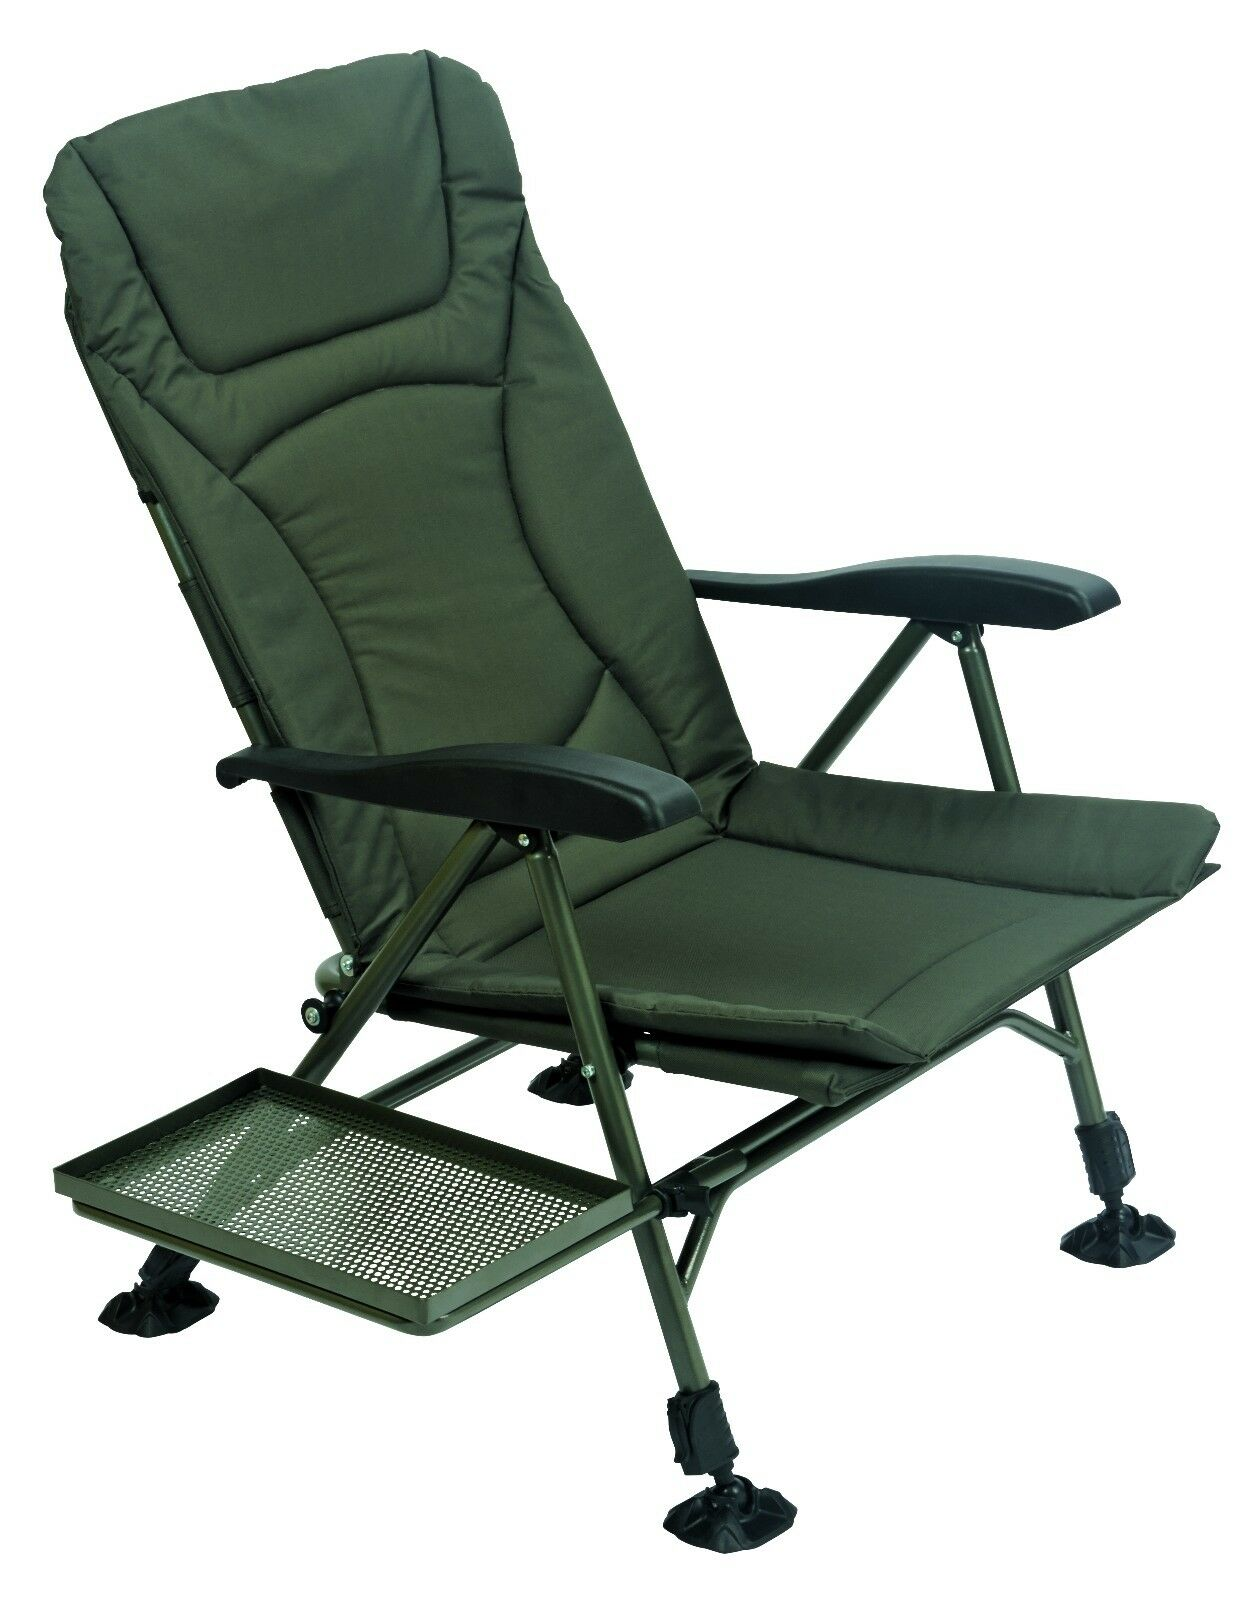 fishing chair with arms reclining ottoman canada tf gear new flatout folding recliner carp bivvy